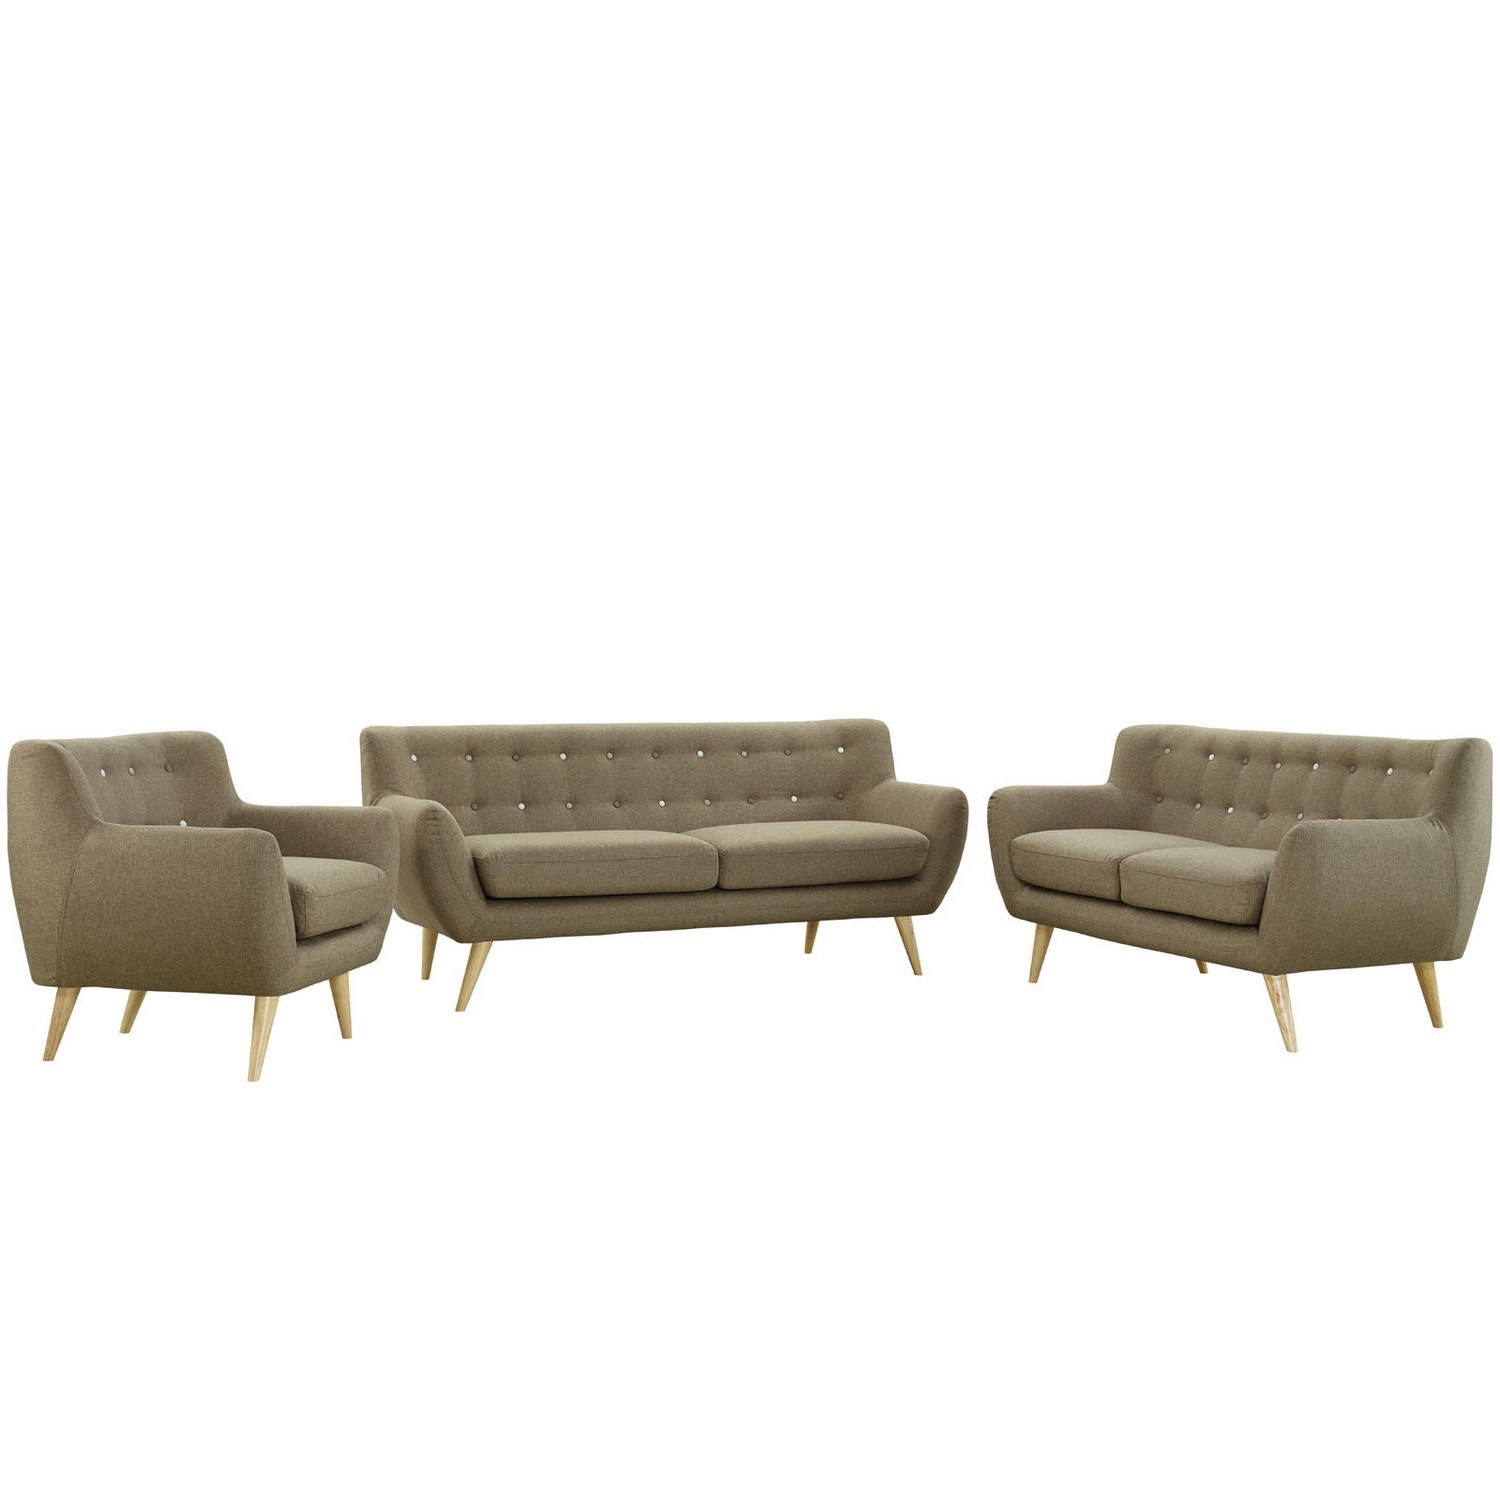 Modway Remark 3 Piece Living Room Set - Brown